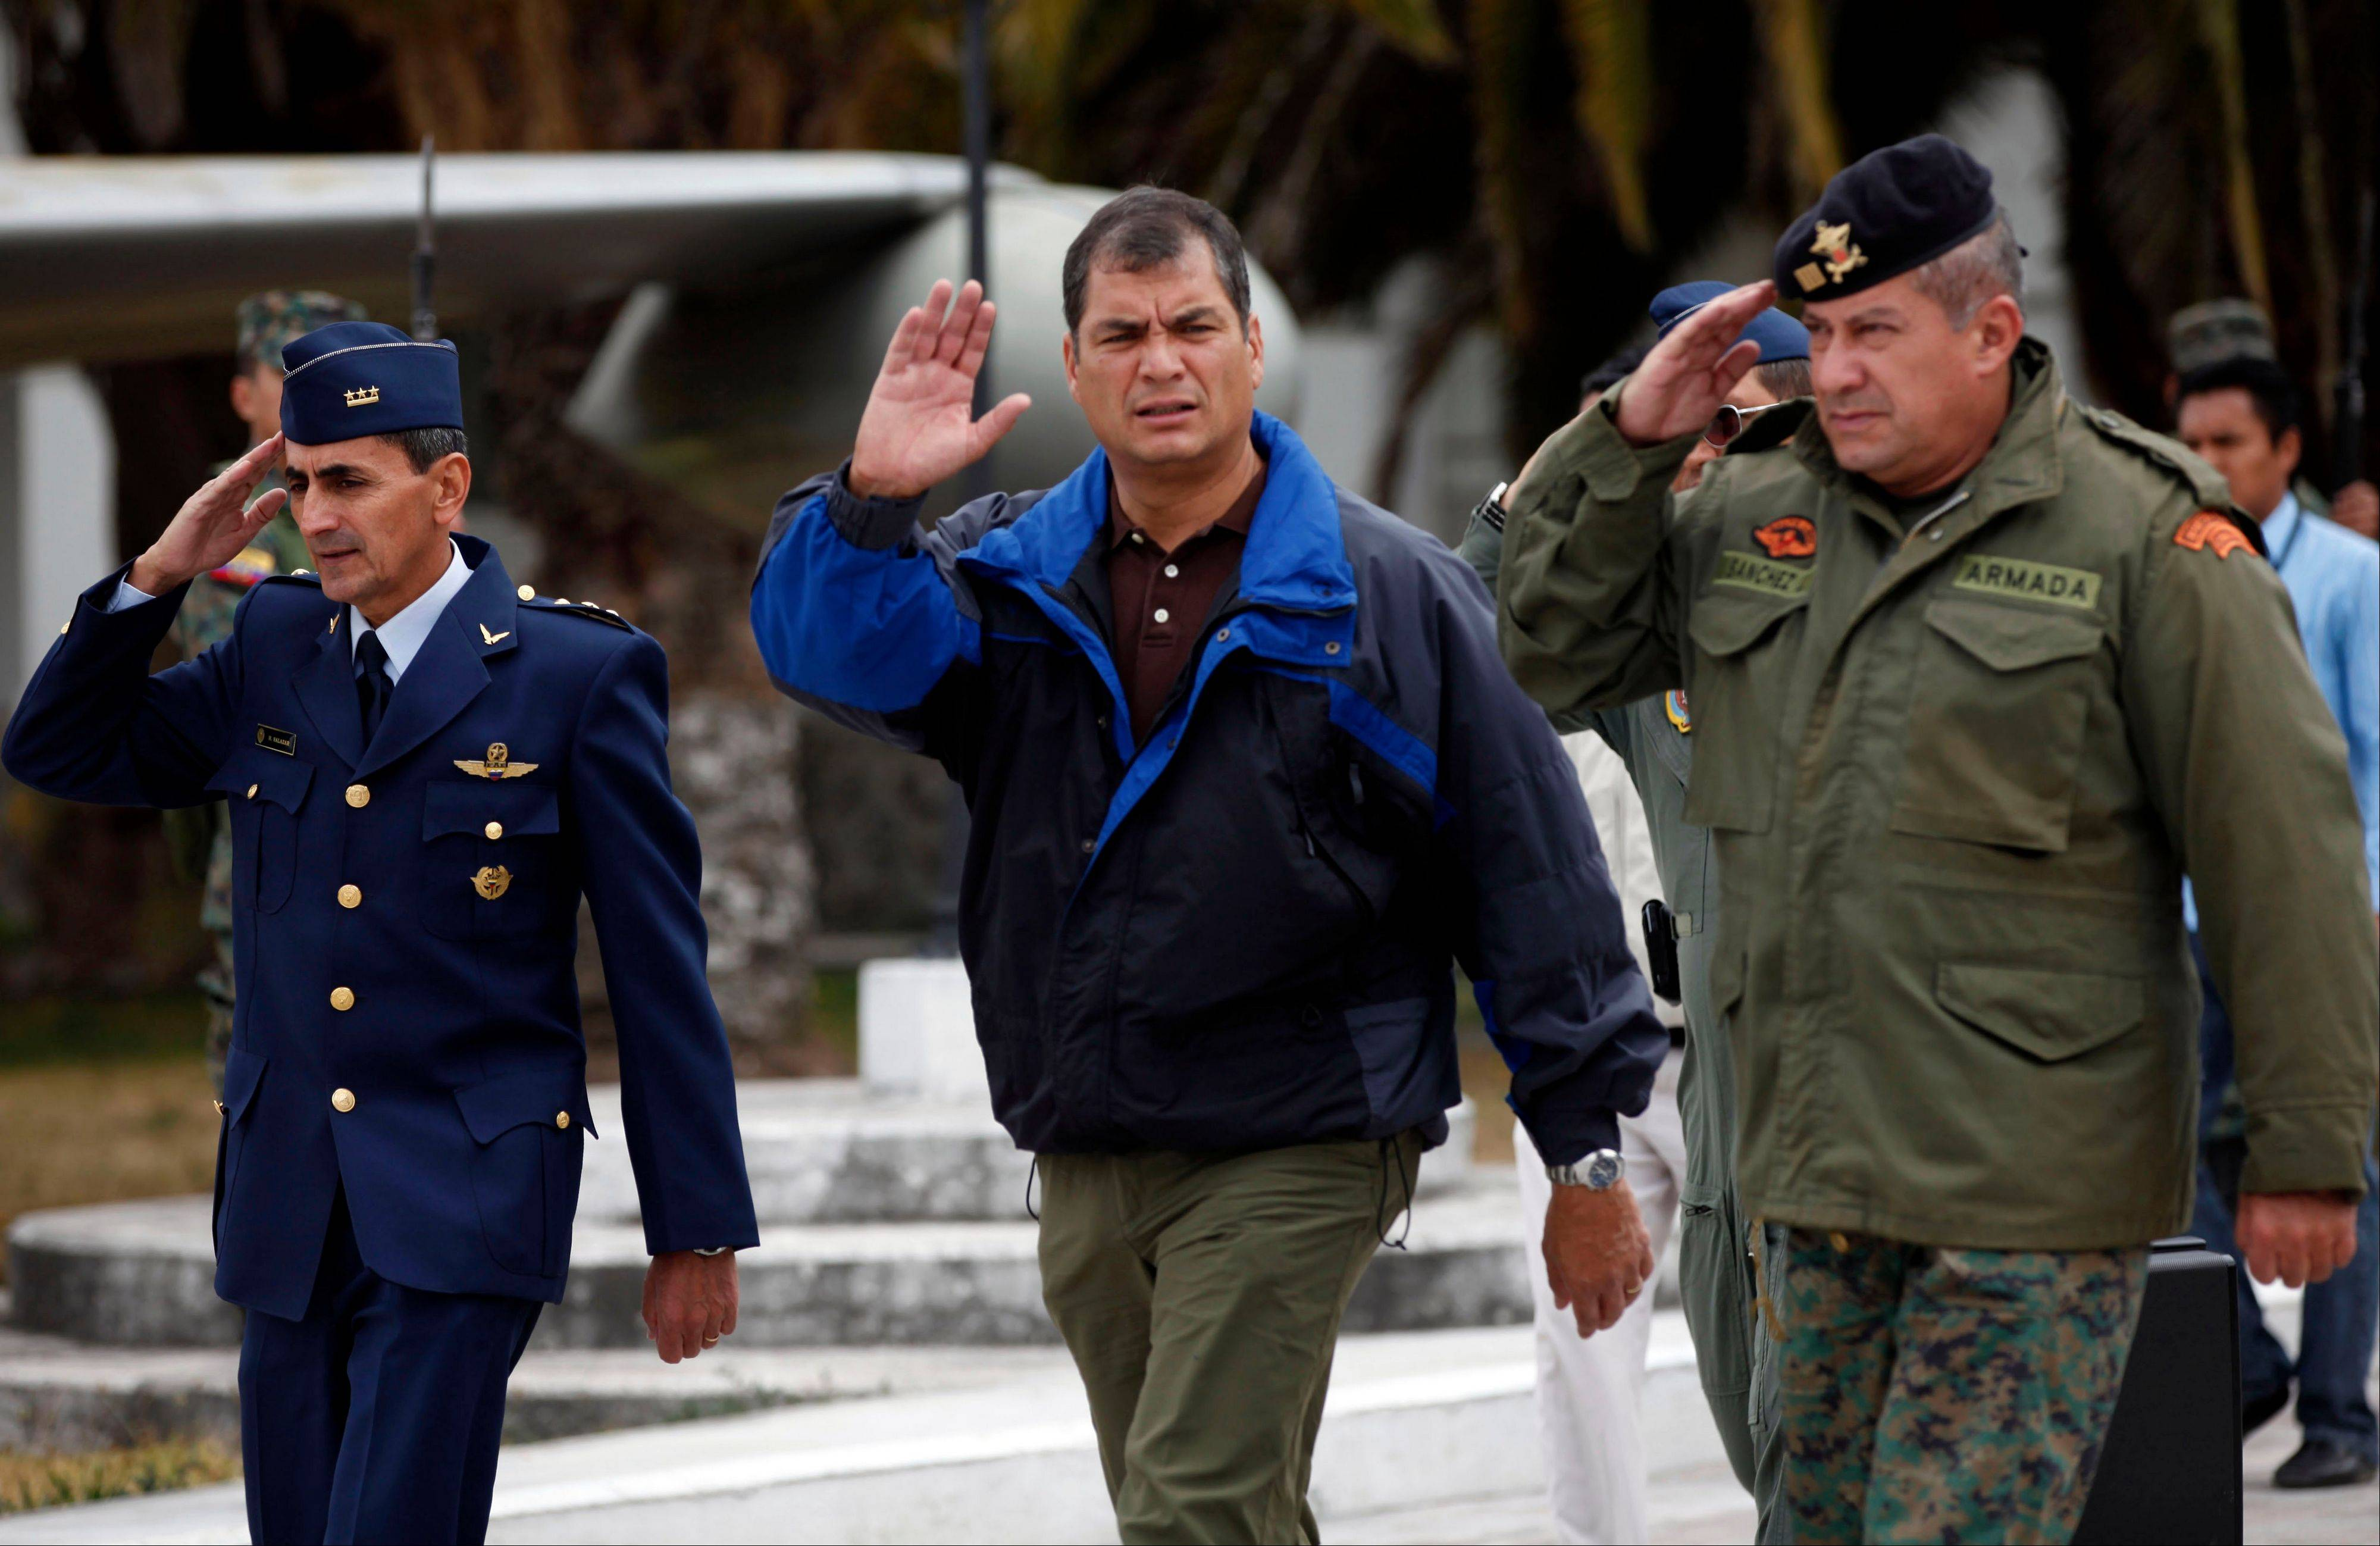 Ecuador's President Rafael Correa, center, waves before flying by plane to the Ecuadorean city of Loja at the airport in Quito, Ecuador, Thursday, Aug. 16, 2012. Ecuador would grant asylum to WikiLeaks' founder Julian Assange two months after he took refuge in its London embassy to avoid extradition to Sweden to face questioning for alleged sexual misconduct.